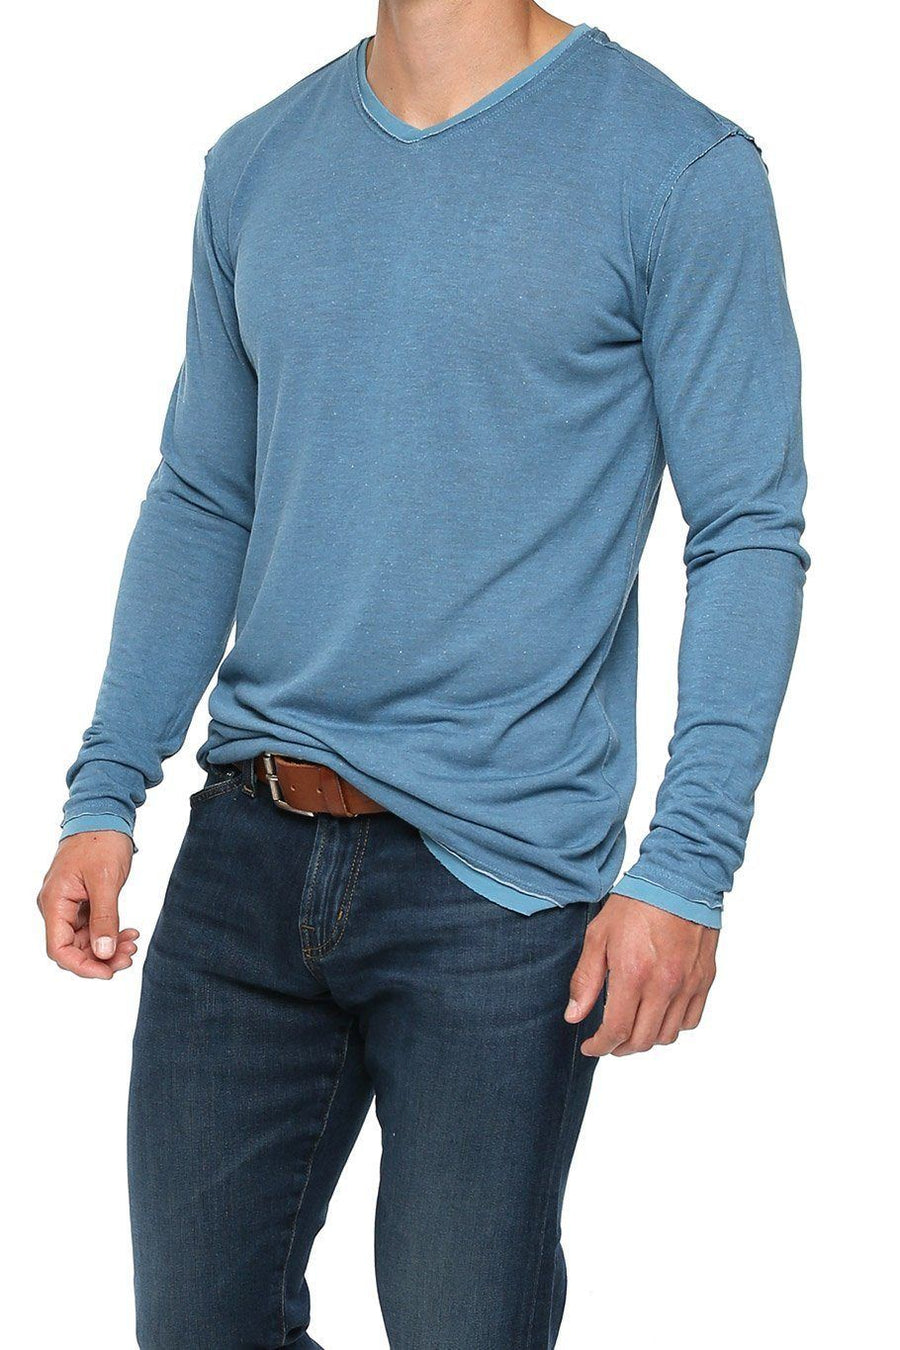 Raw Edge Long Sleeve V-Neck Shirt - Faded Denim - Shore